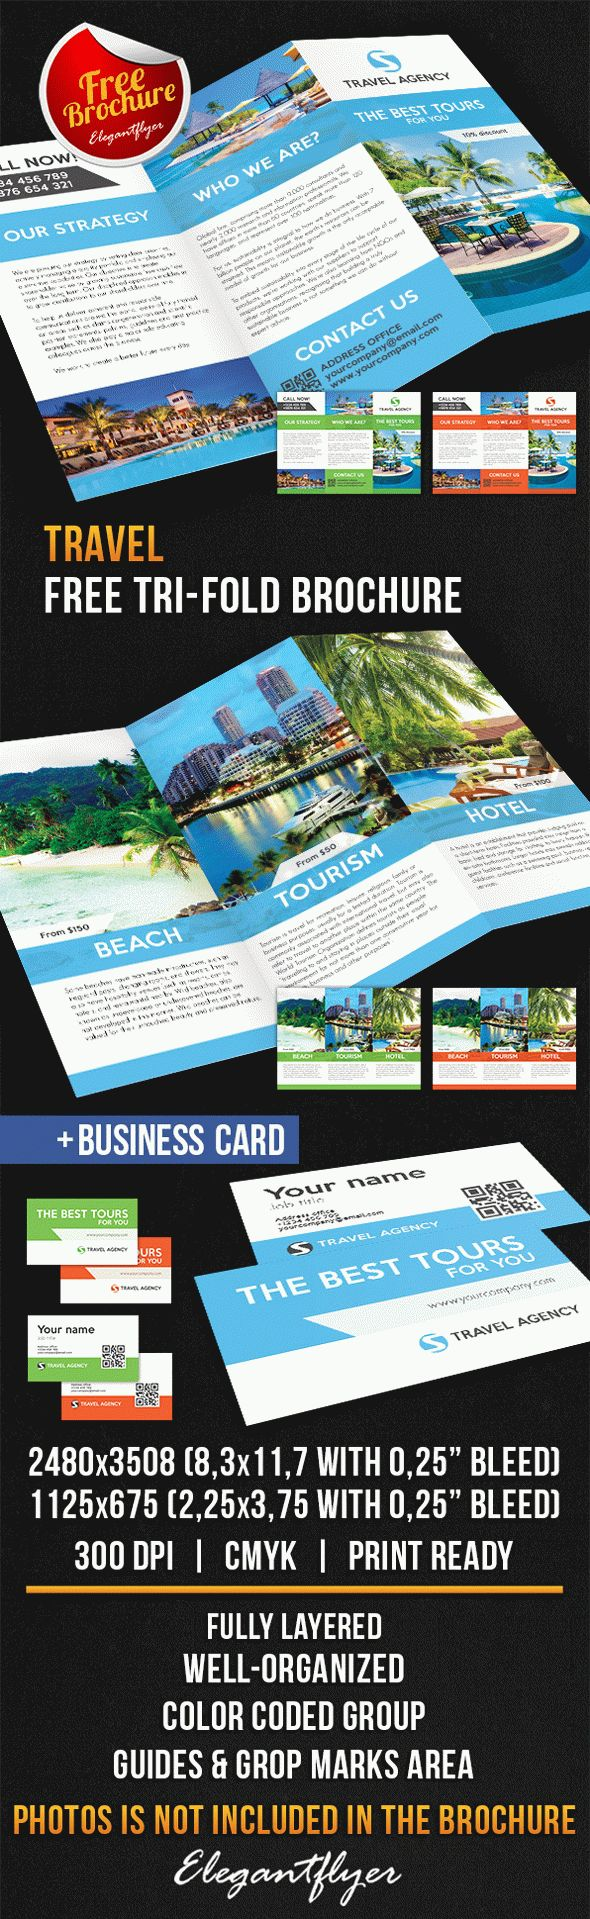 Travel Tri-Fold Brochure – Free PSD Template